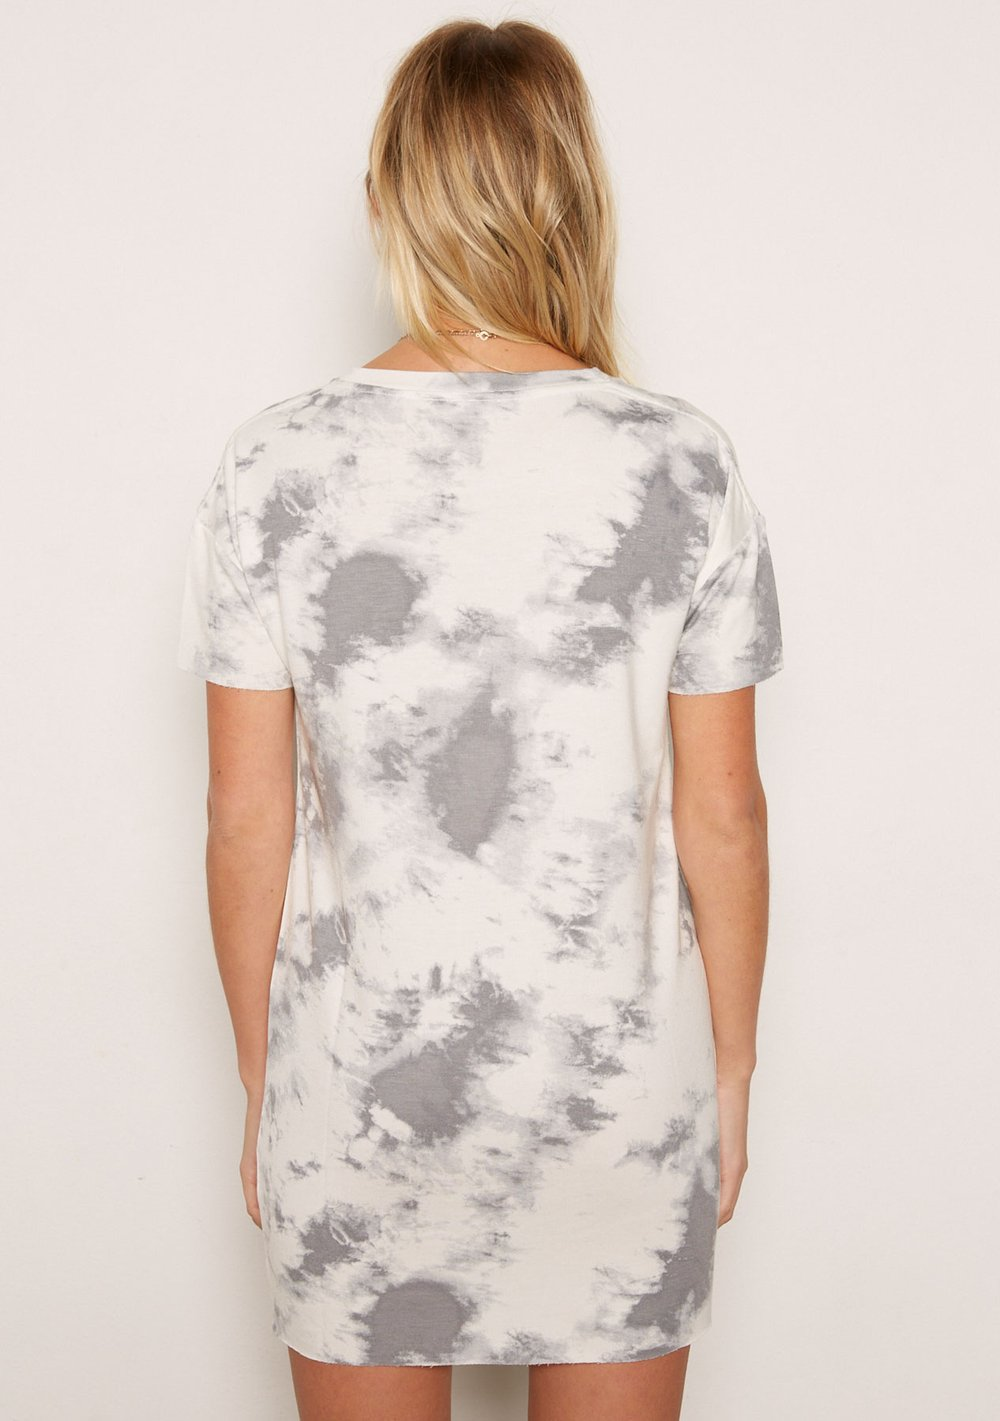 Tart Ellena Dress in Soft Tie Dye